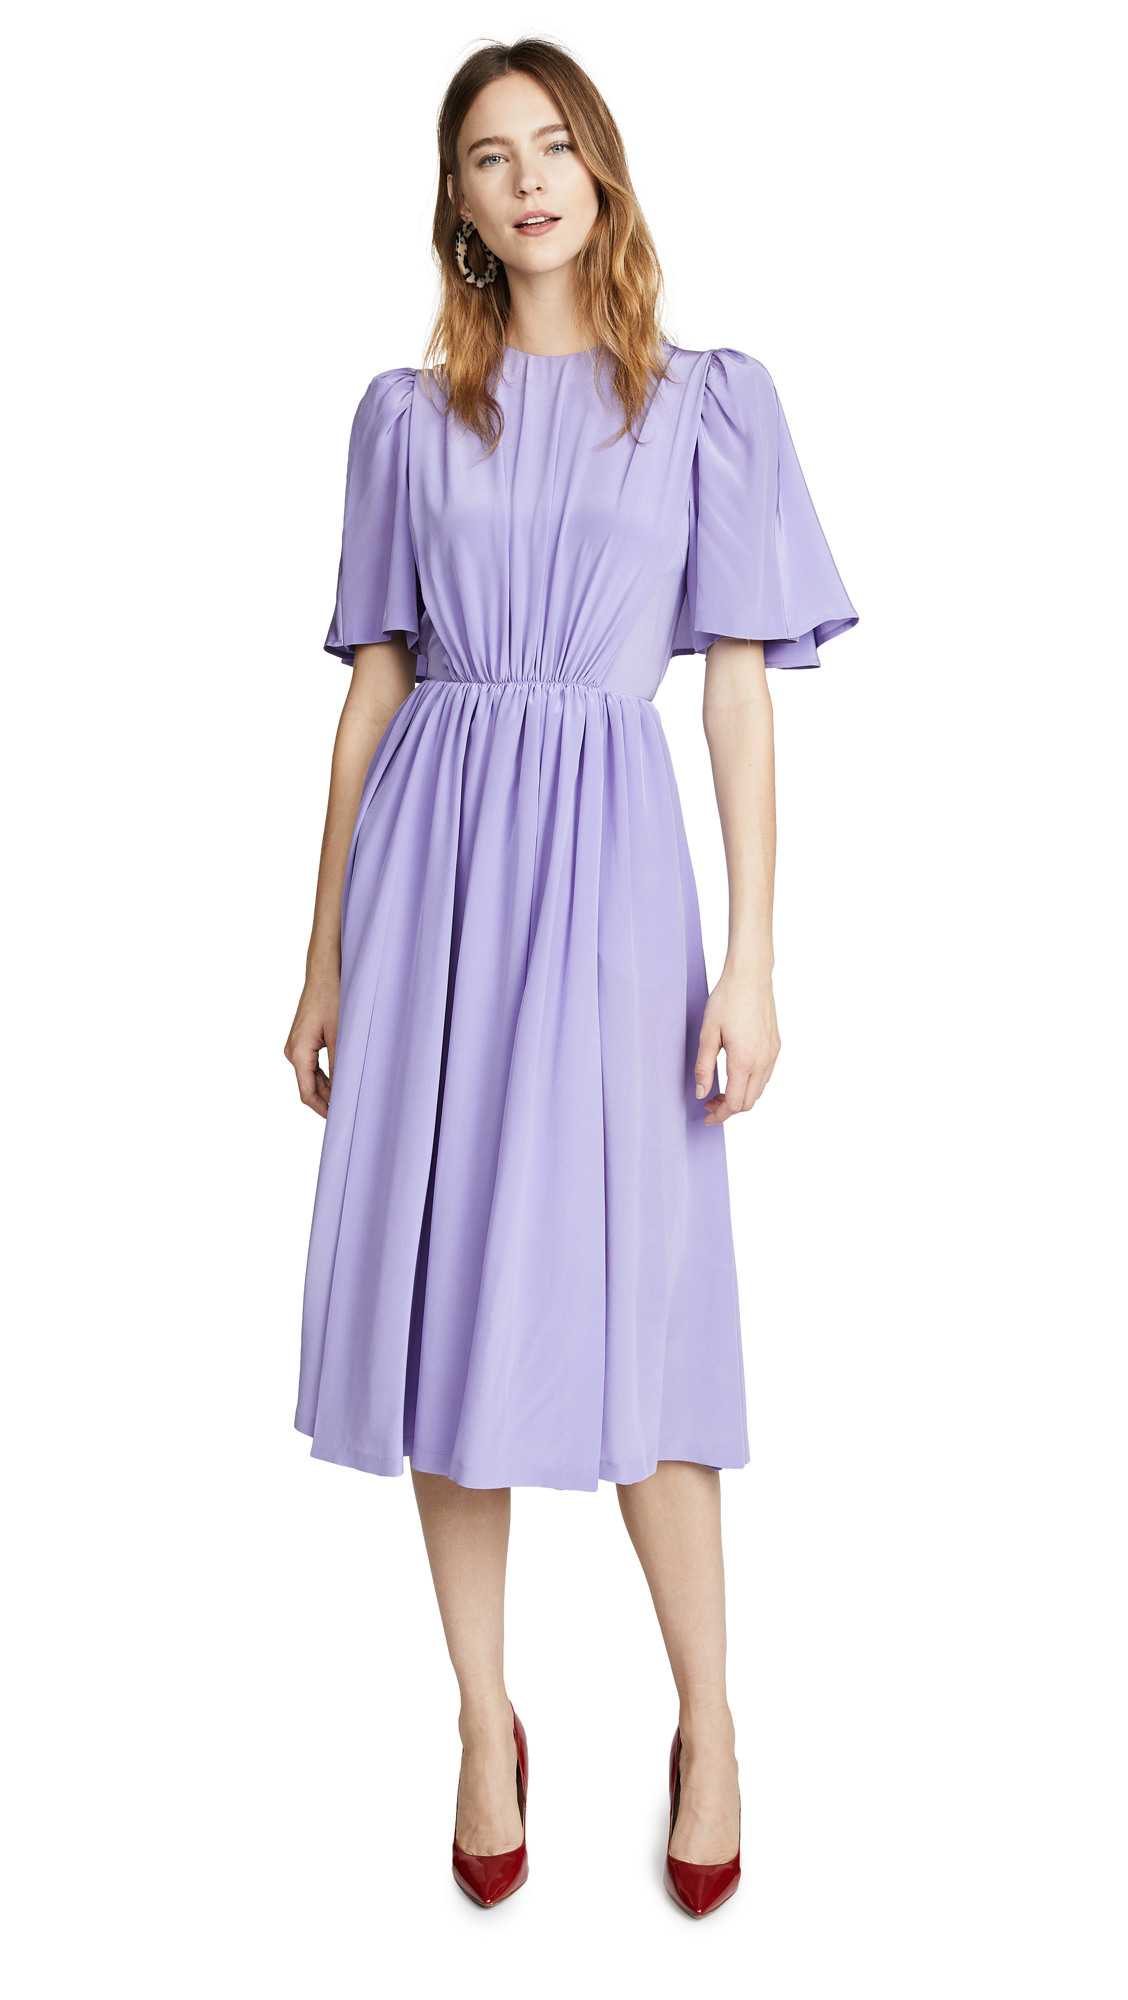 Pushbutton MIDI DRESS WITH FLUTTER SLEEVES